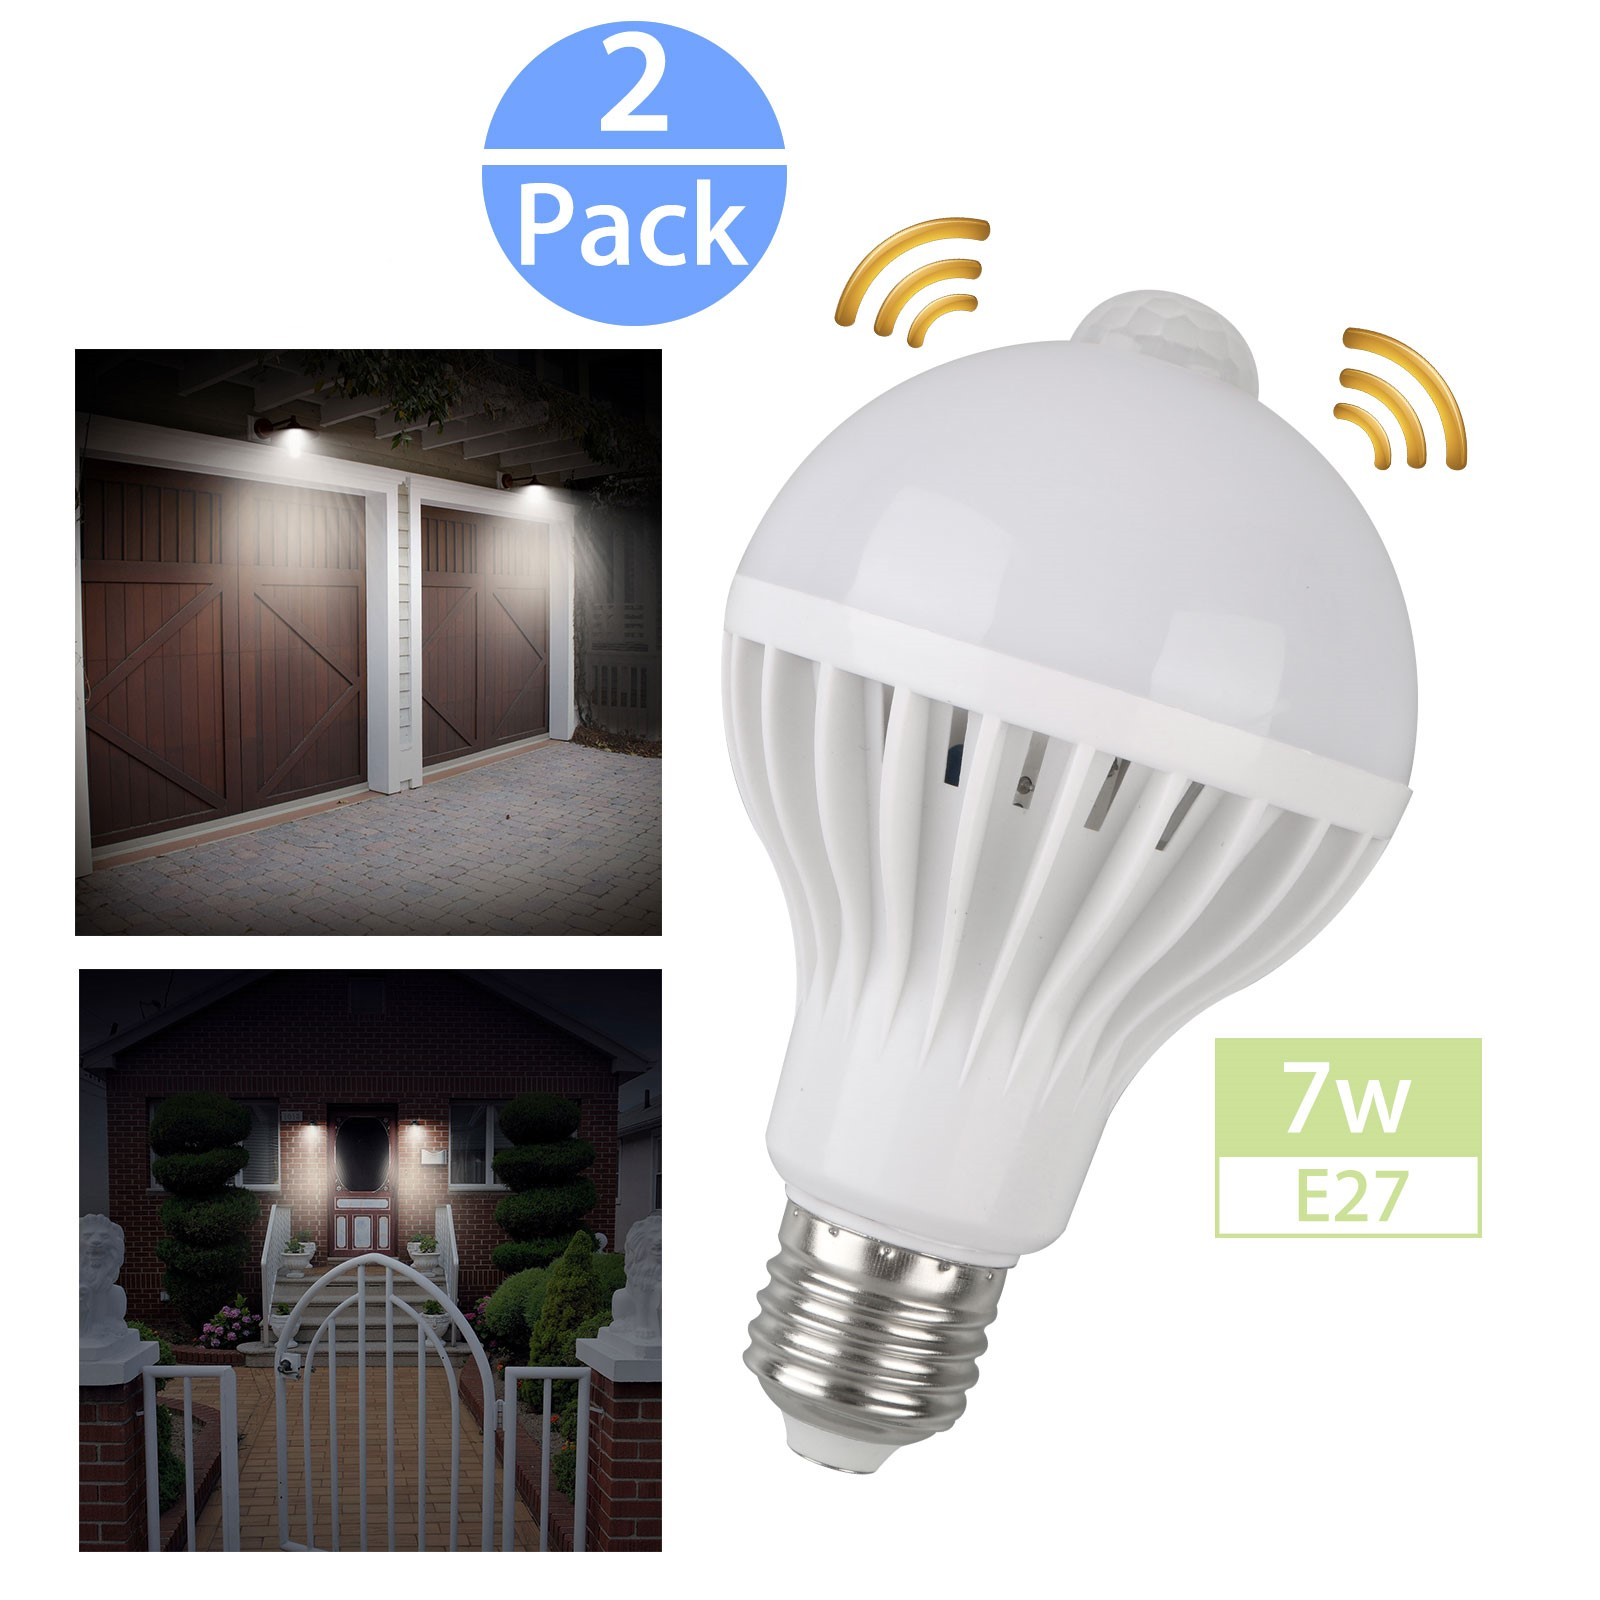 Outdoor Motion Sensor Light Bulb E27 7w Indoor Automatic Activated By Motionsecurity Bulbs For Entrance Porch Stairs Garage Hallway 2 Pack Walmart Com Walmart Com